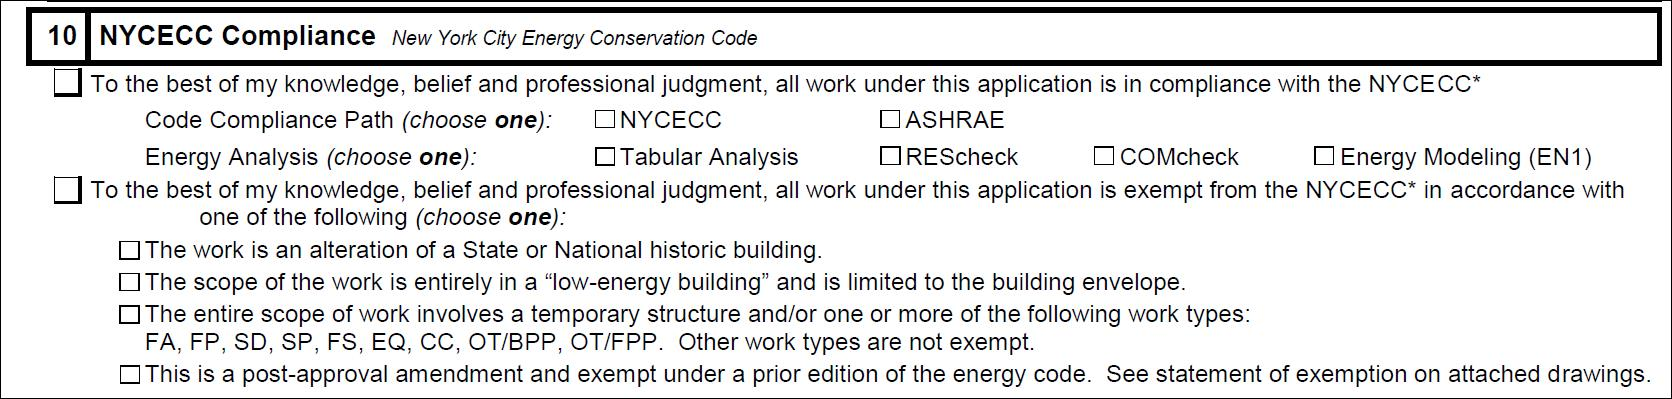 buildings - energy code forms